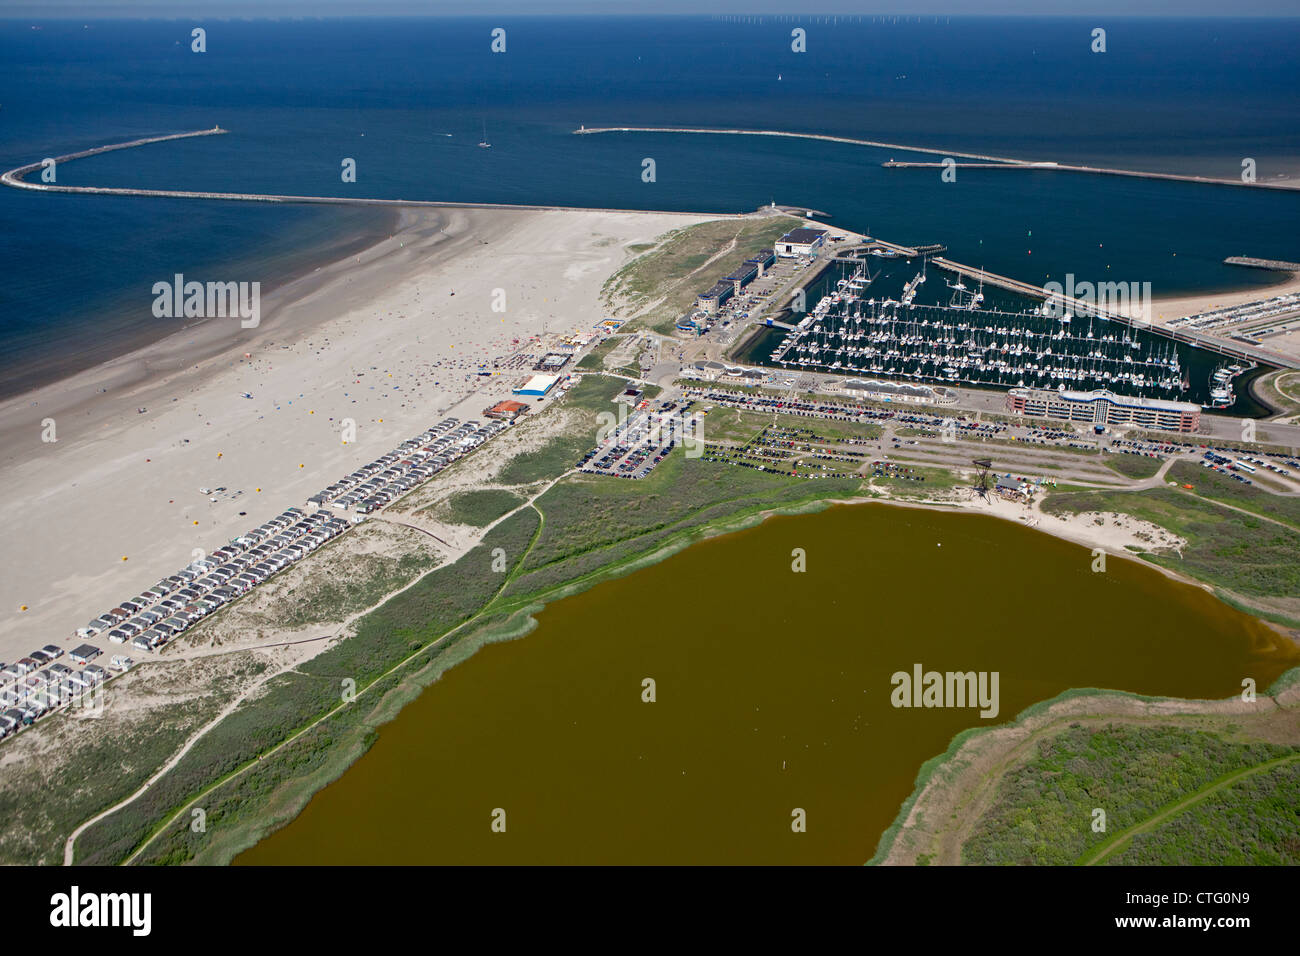 The Netherlands, IJmuiden, Aerial, Entrance of North Sea Canal. - Stock Image